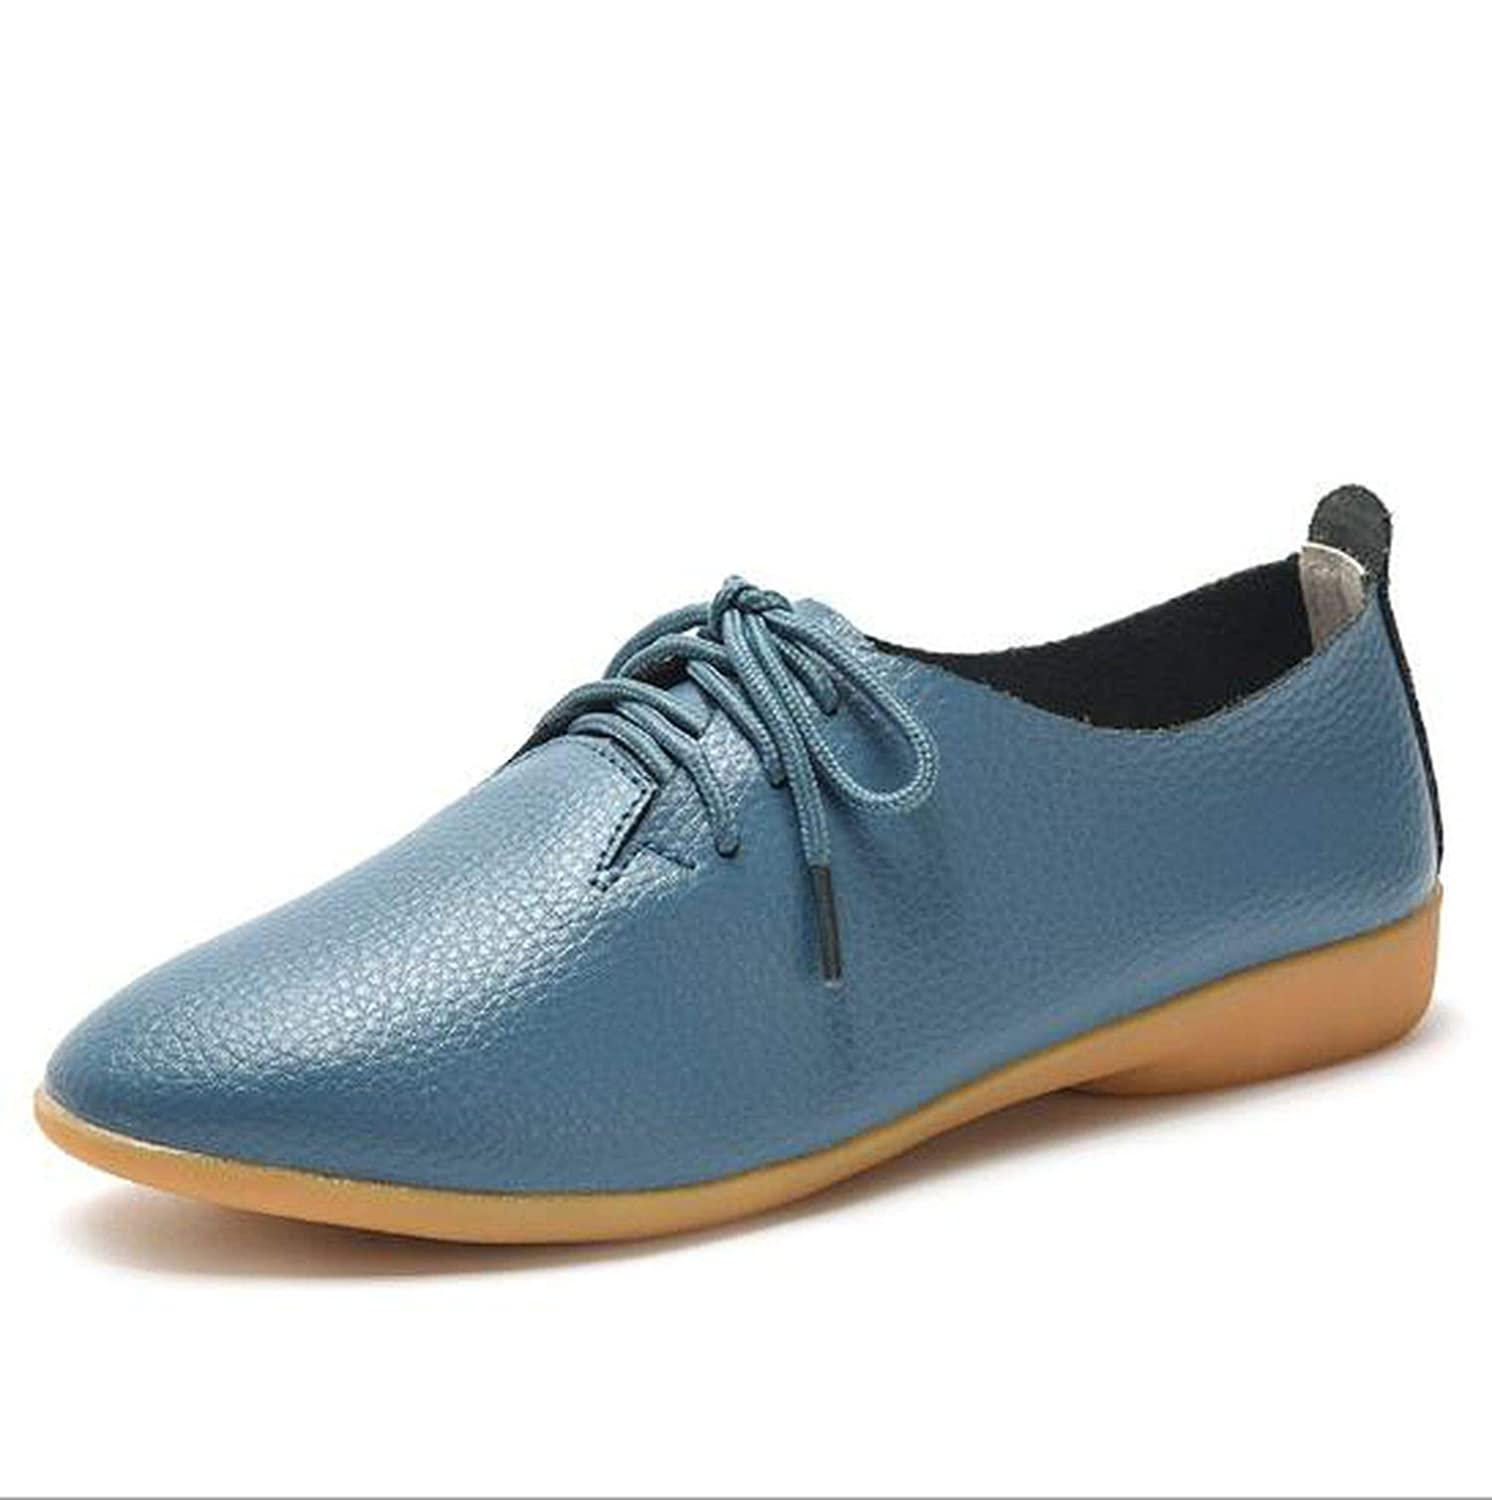 Pointed Toe Casual Split Leather Shoes Woman Solid Candy Colors Flat Shoes Woman Plus Size Soft Shoes